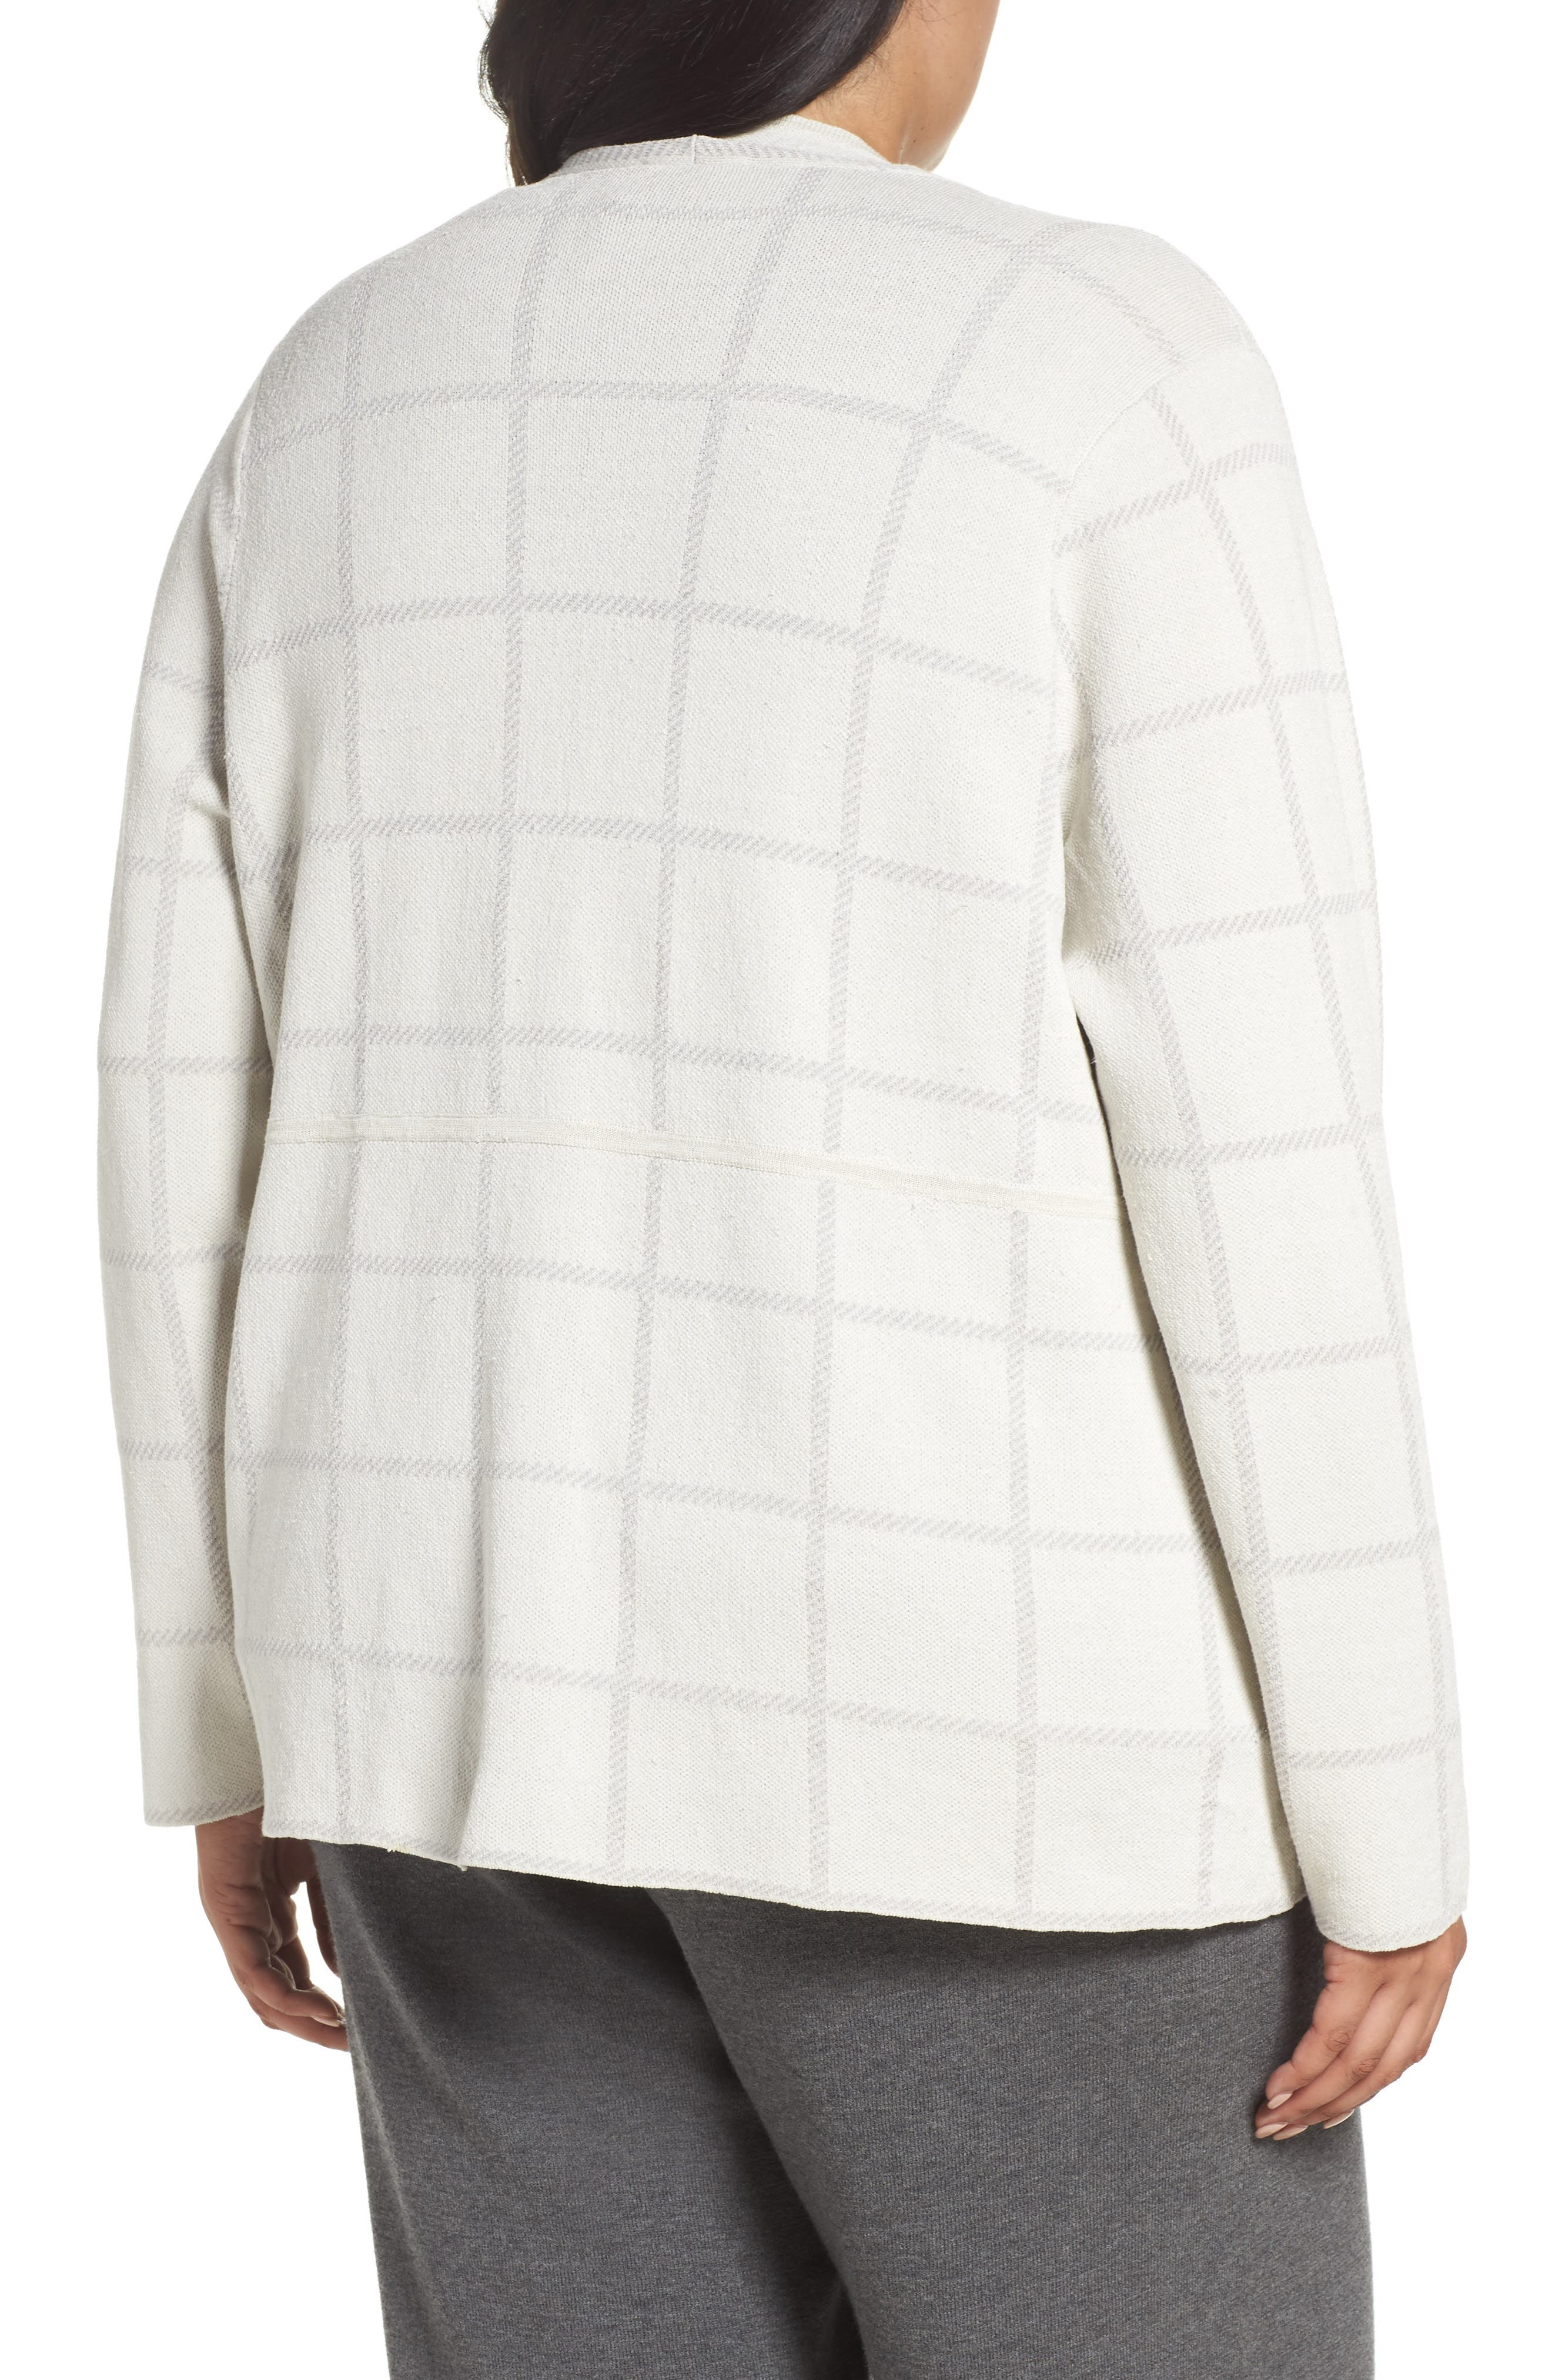 Alternate Image 2  - Eileen Fisher Angle Front Cardigan (Plus Size)